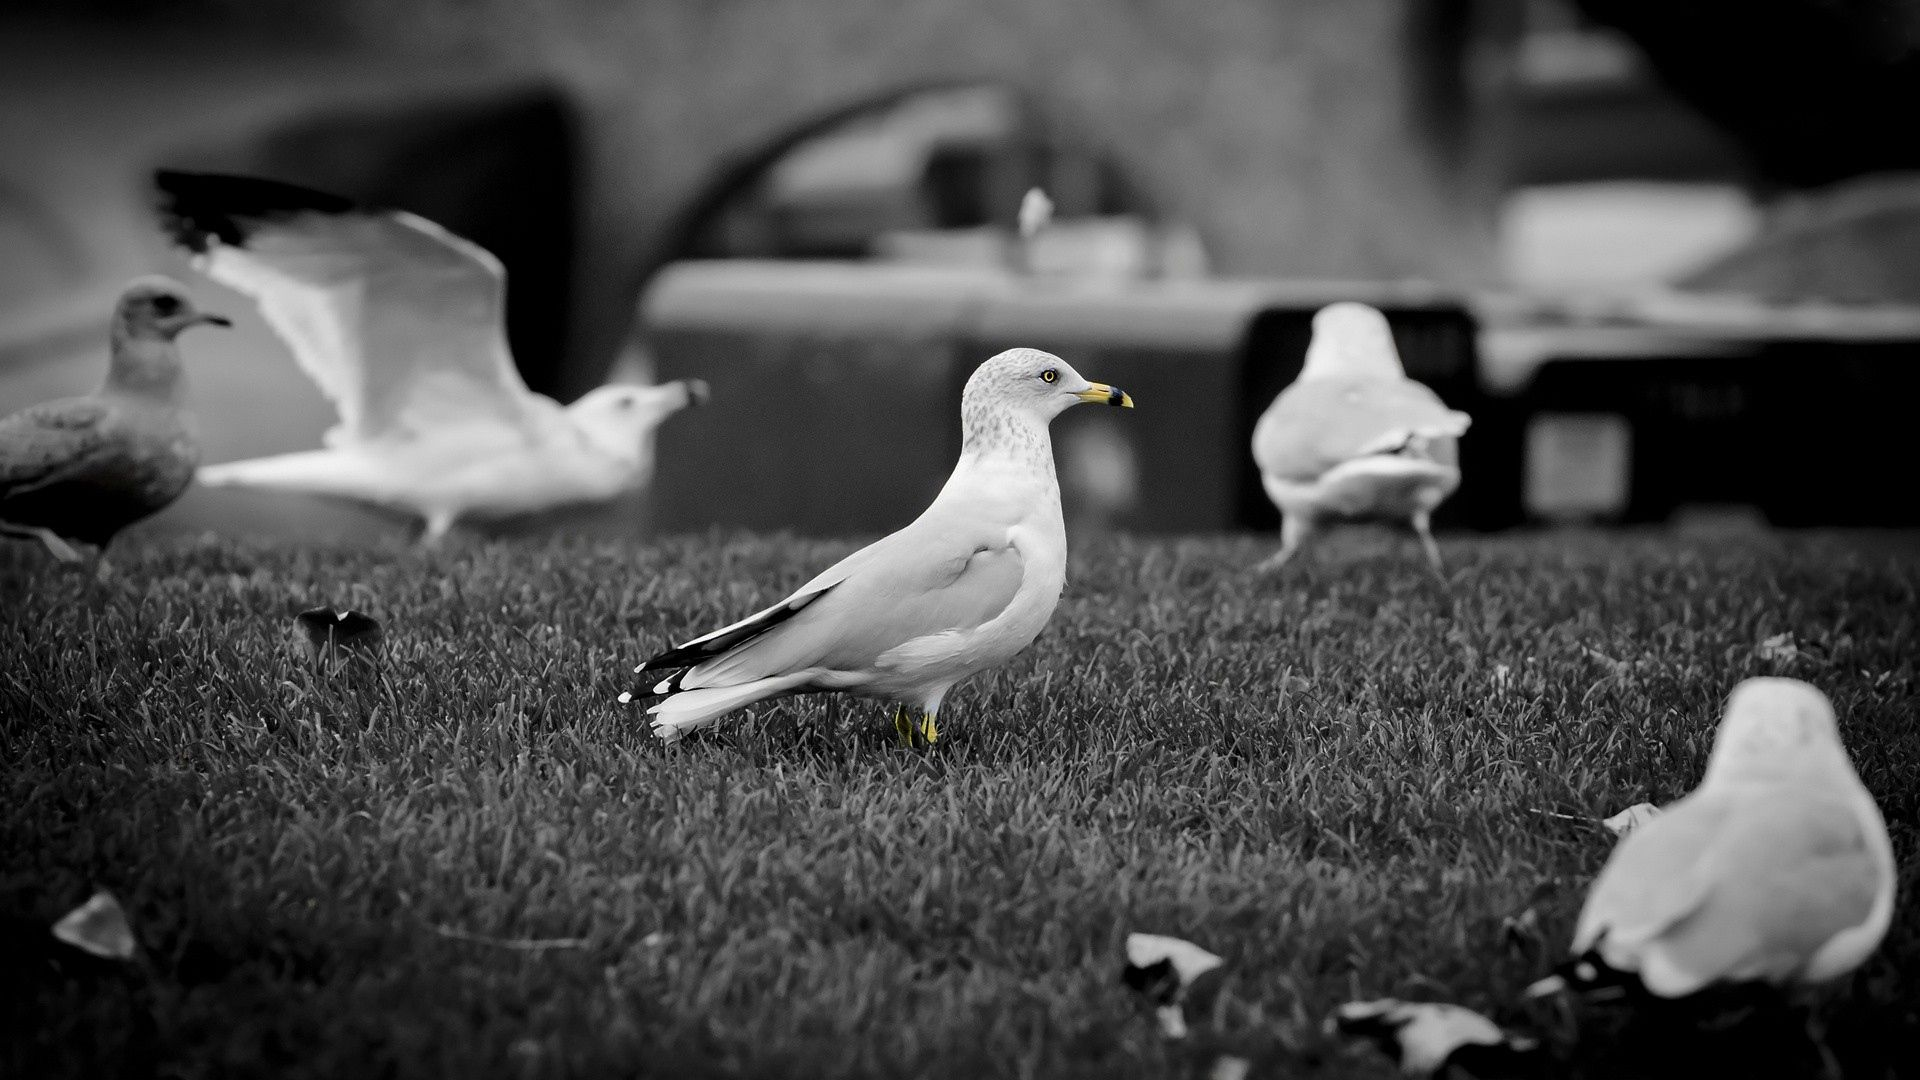 127364 download wallpaper Animals, Stroll, Flock, Bw, Chb, Birds, Seagulls screensavers and pictures for free